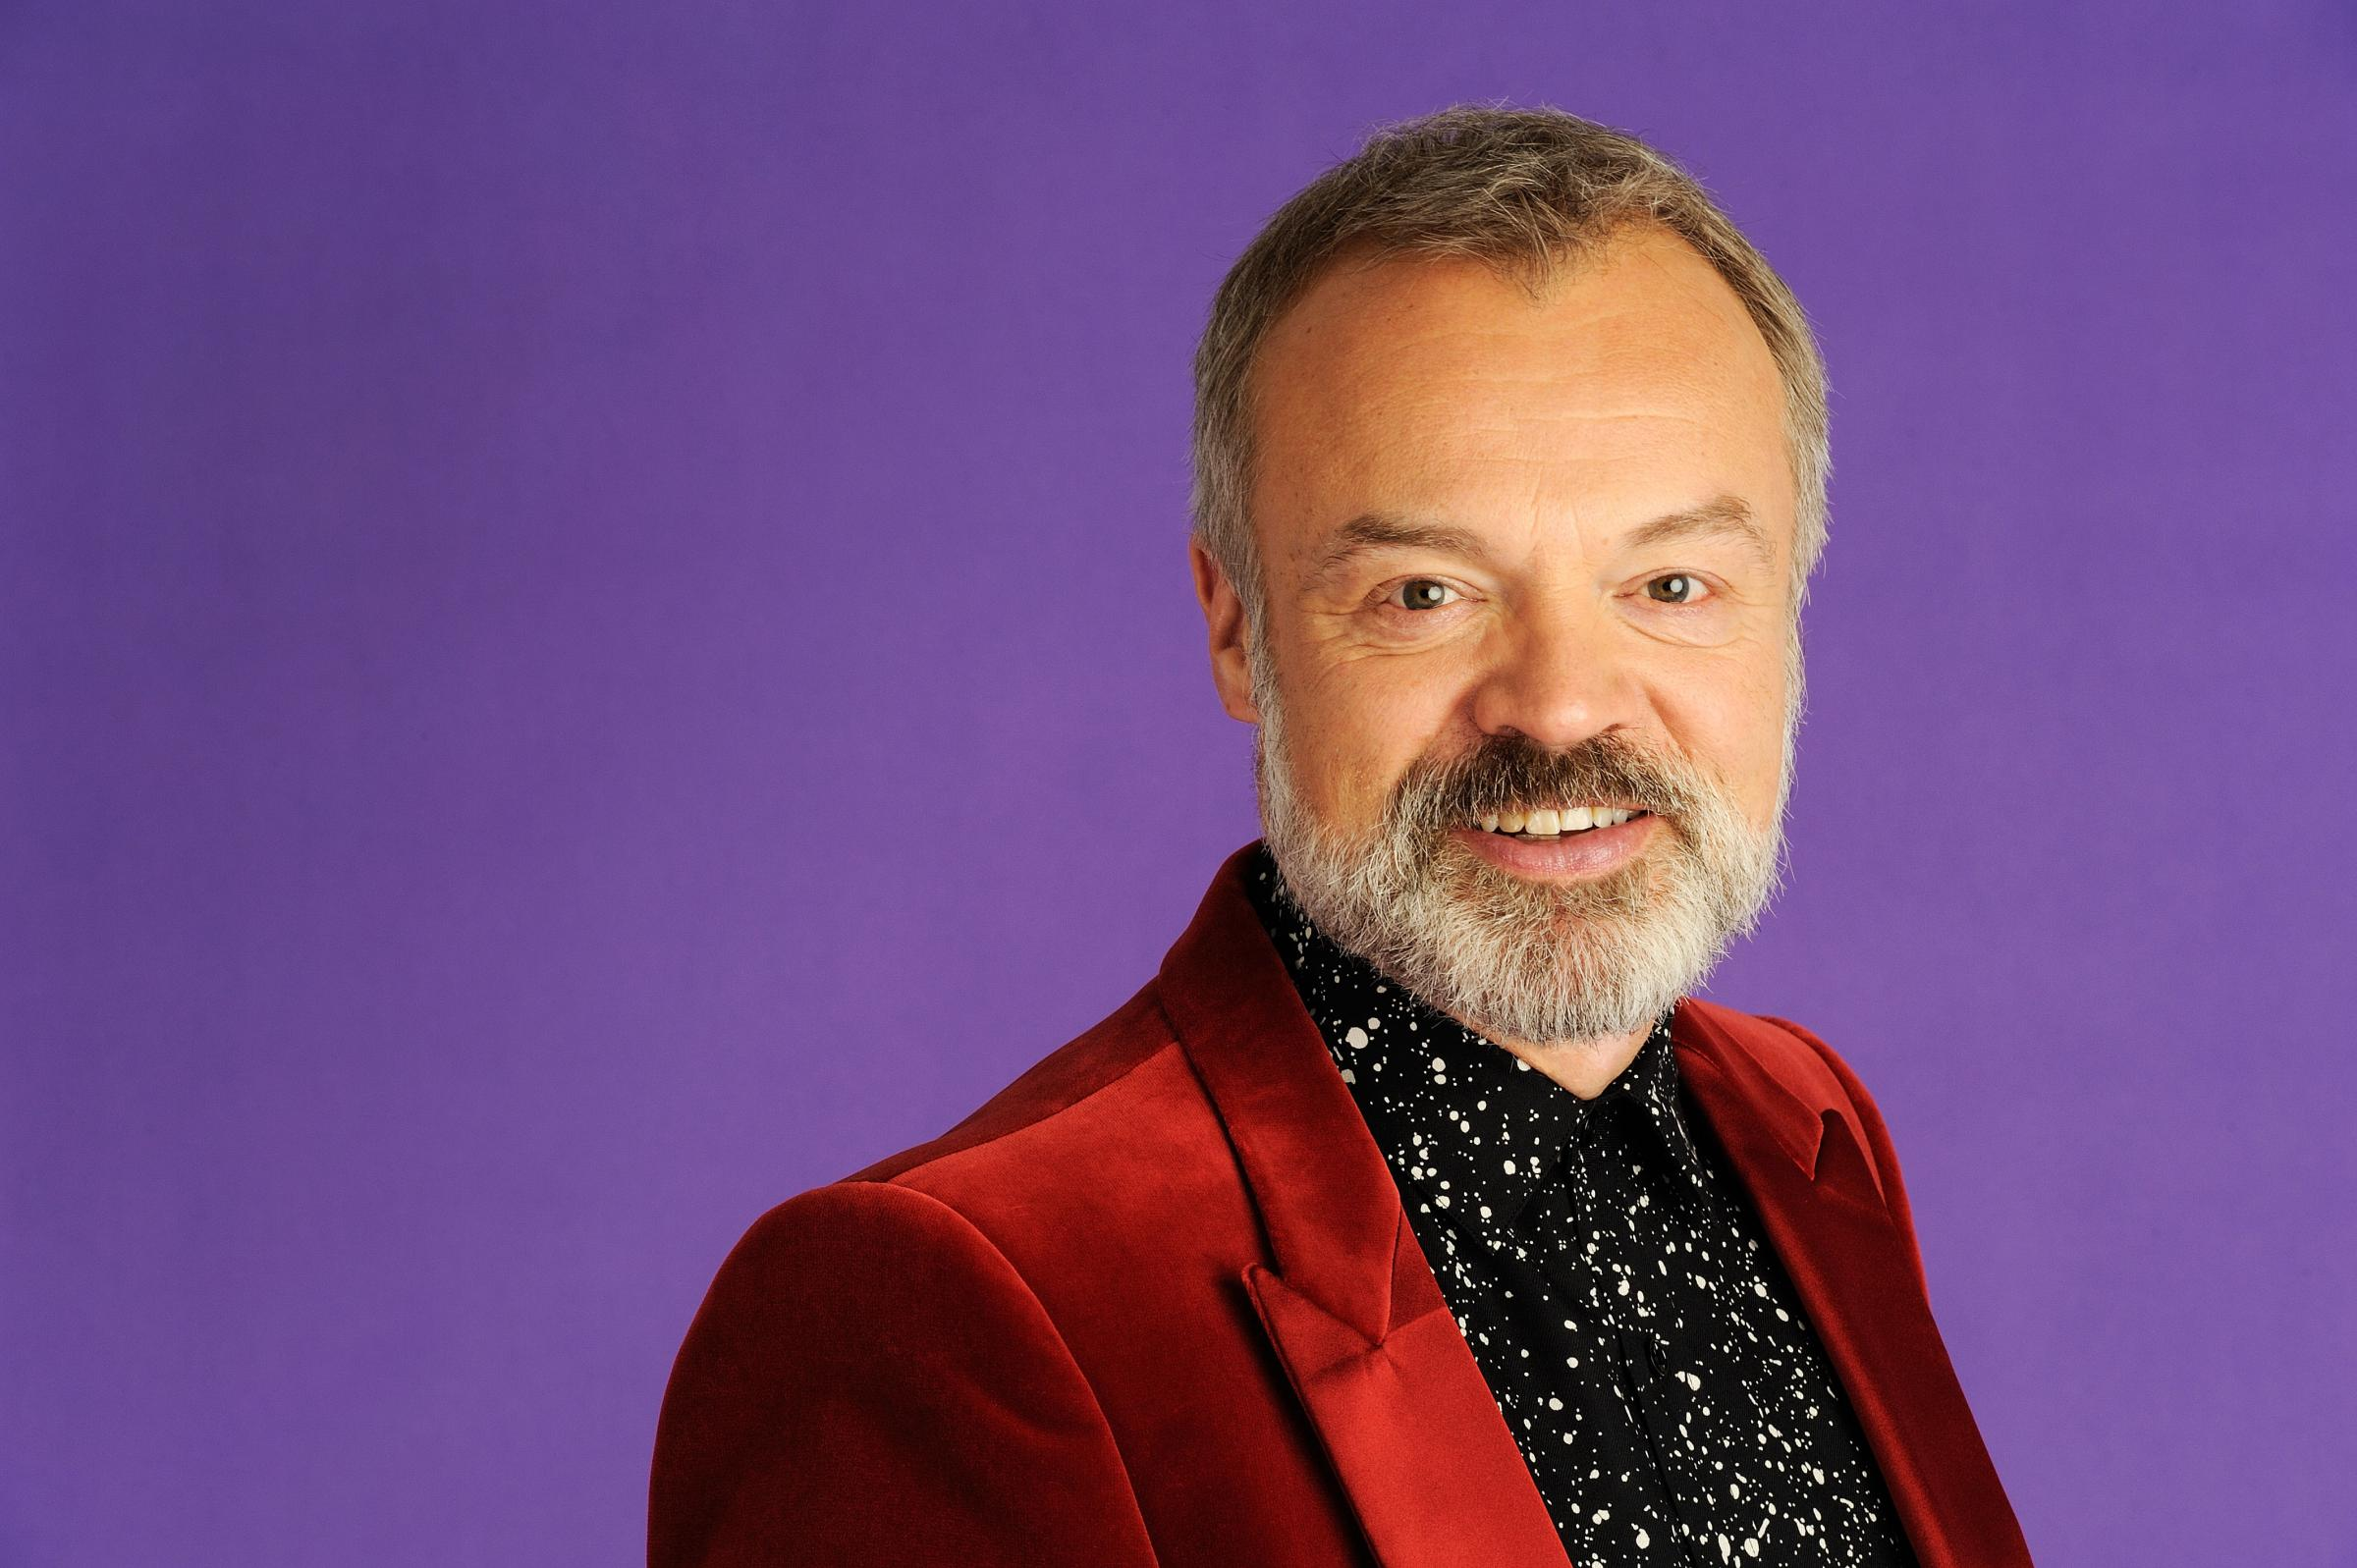 Graham Norton is back to meet more stars